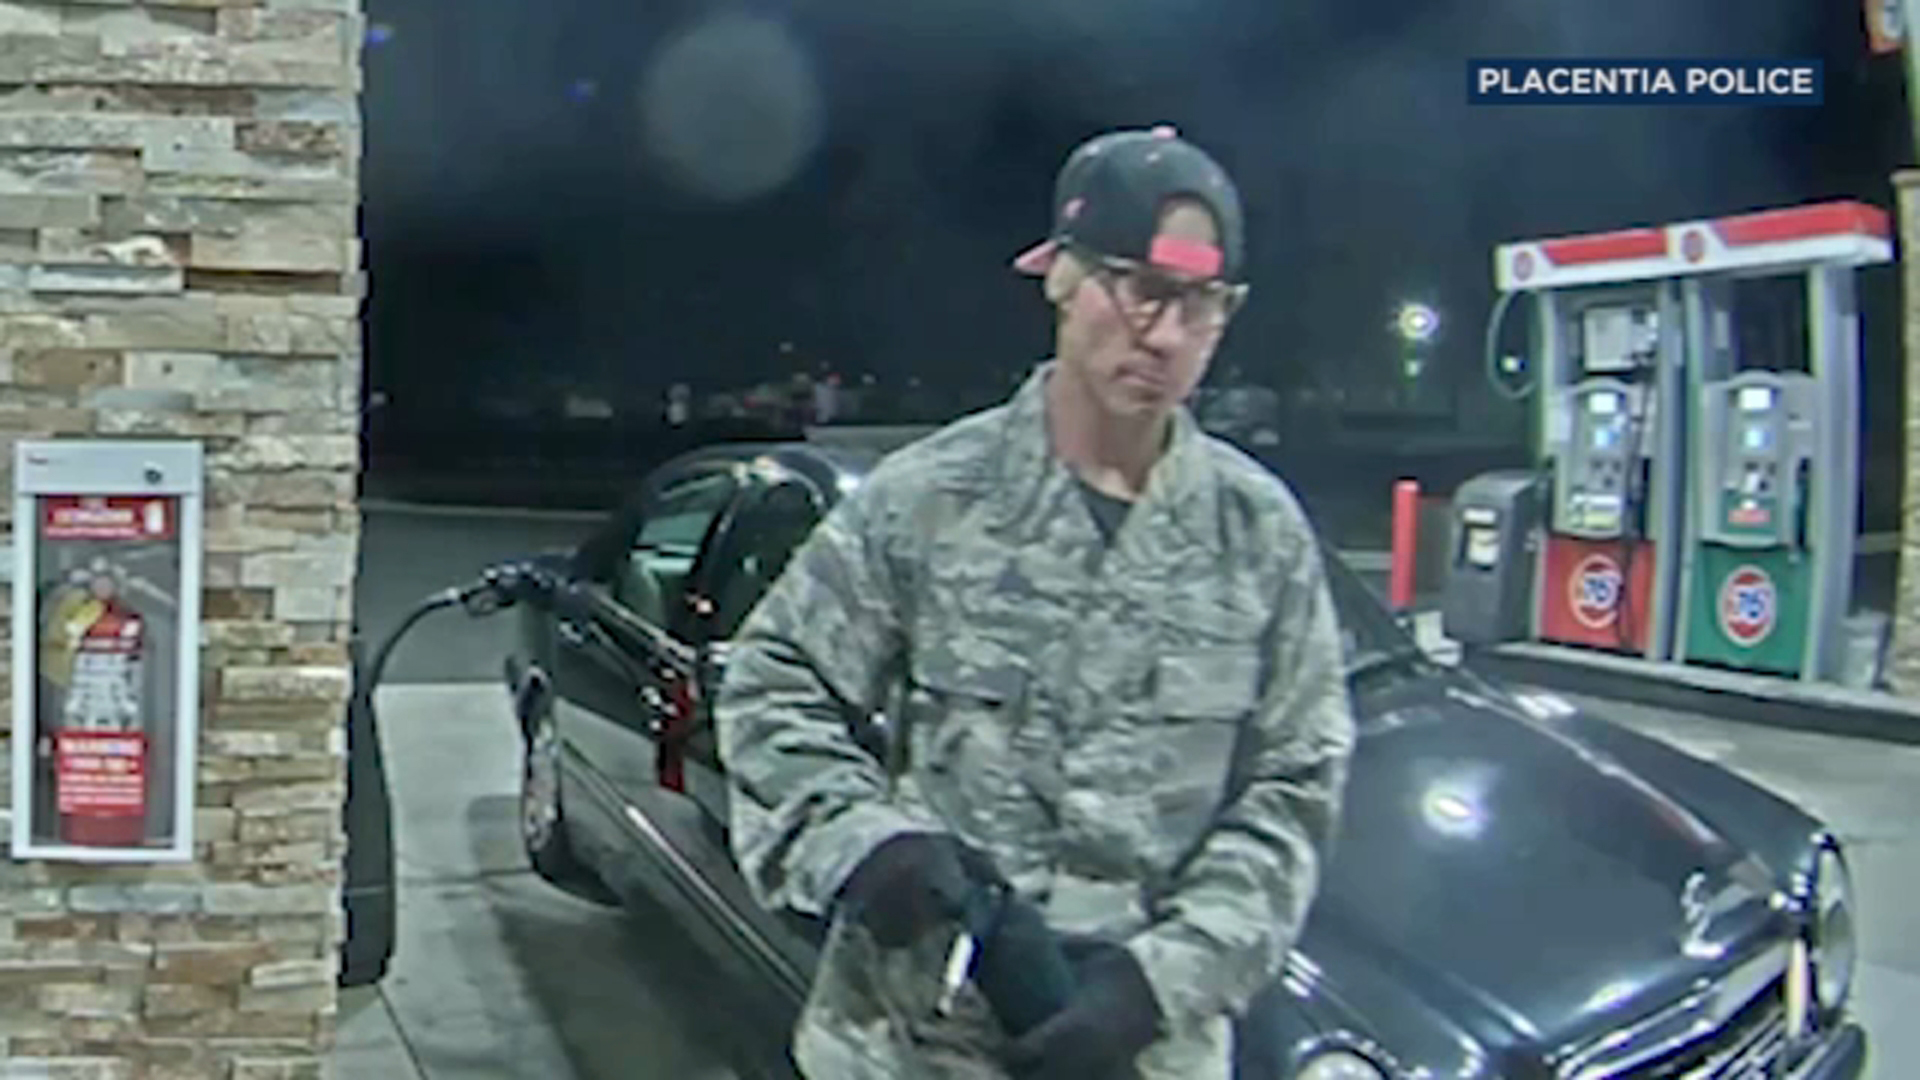 The Placentia Police Department is asking for the publics help in identifying a man caught on camera using a blowtorch while attempting to break into a gas station ATM machine.